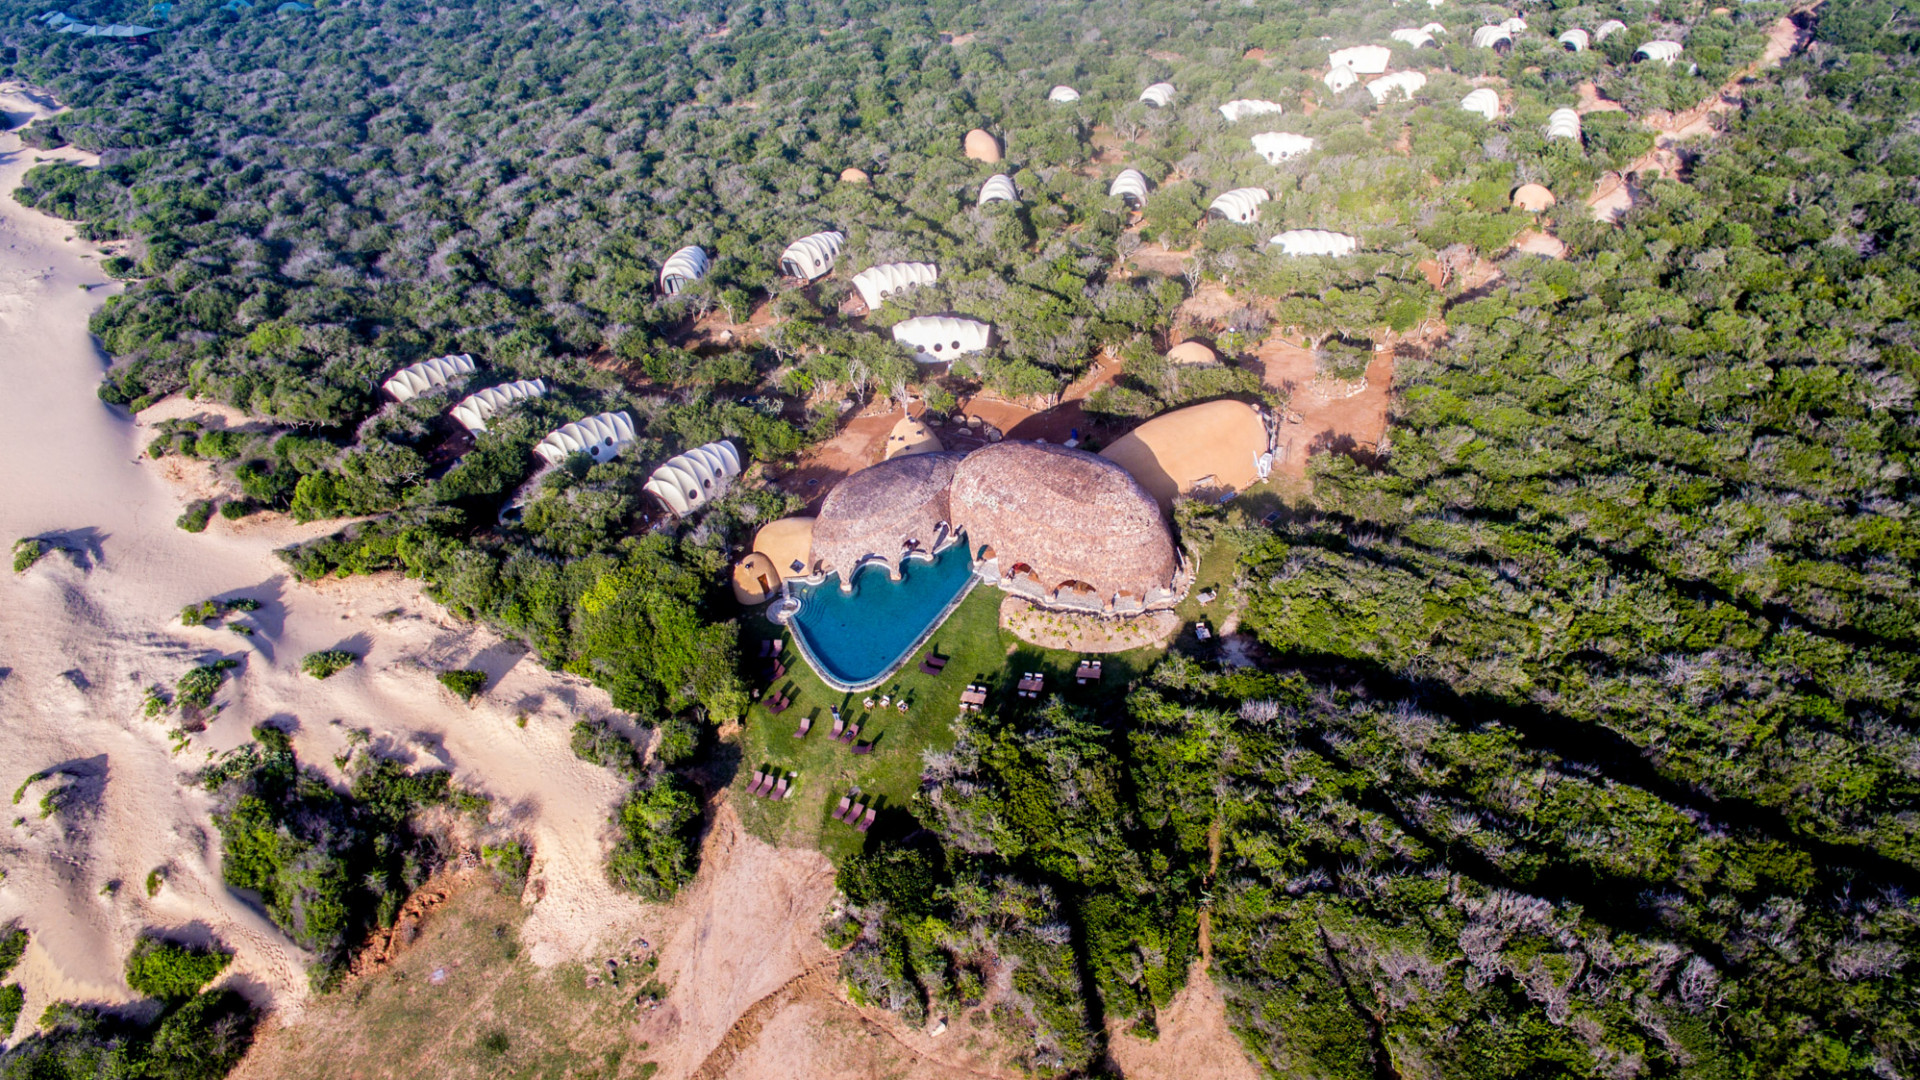 Aerial view of Wild Coast Tented Lodge in Sri Lanka